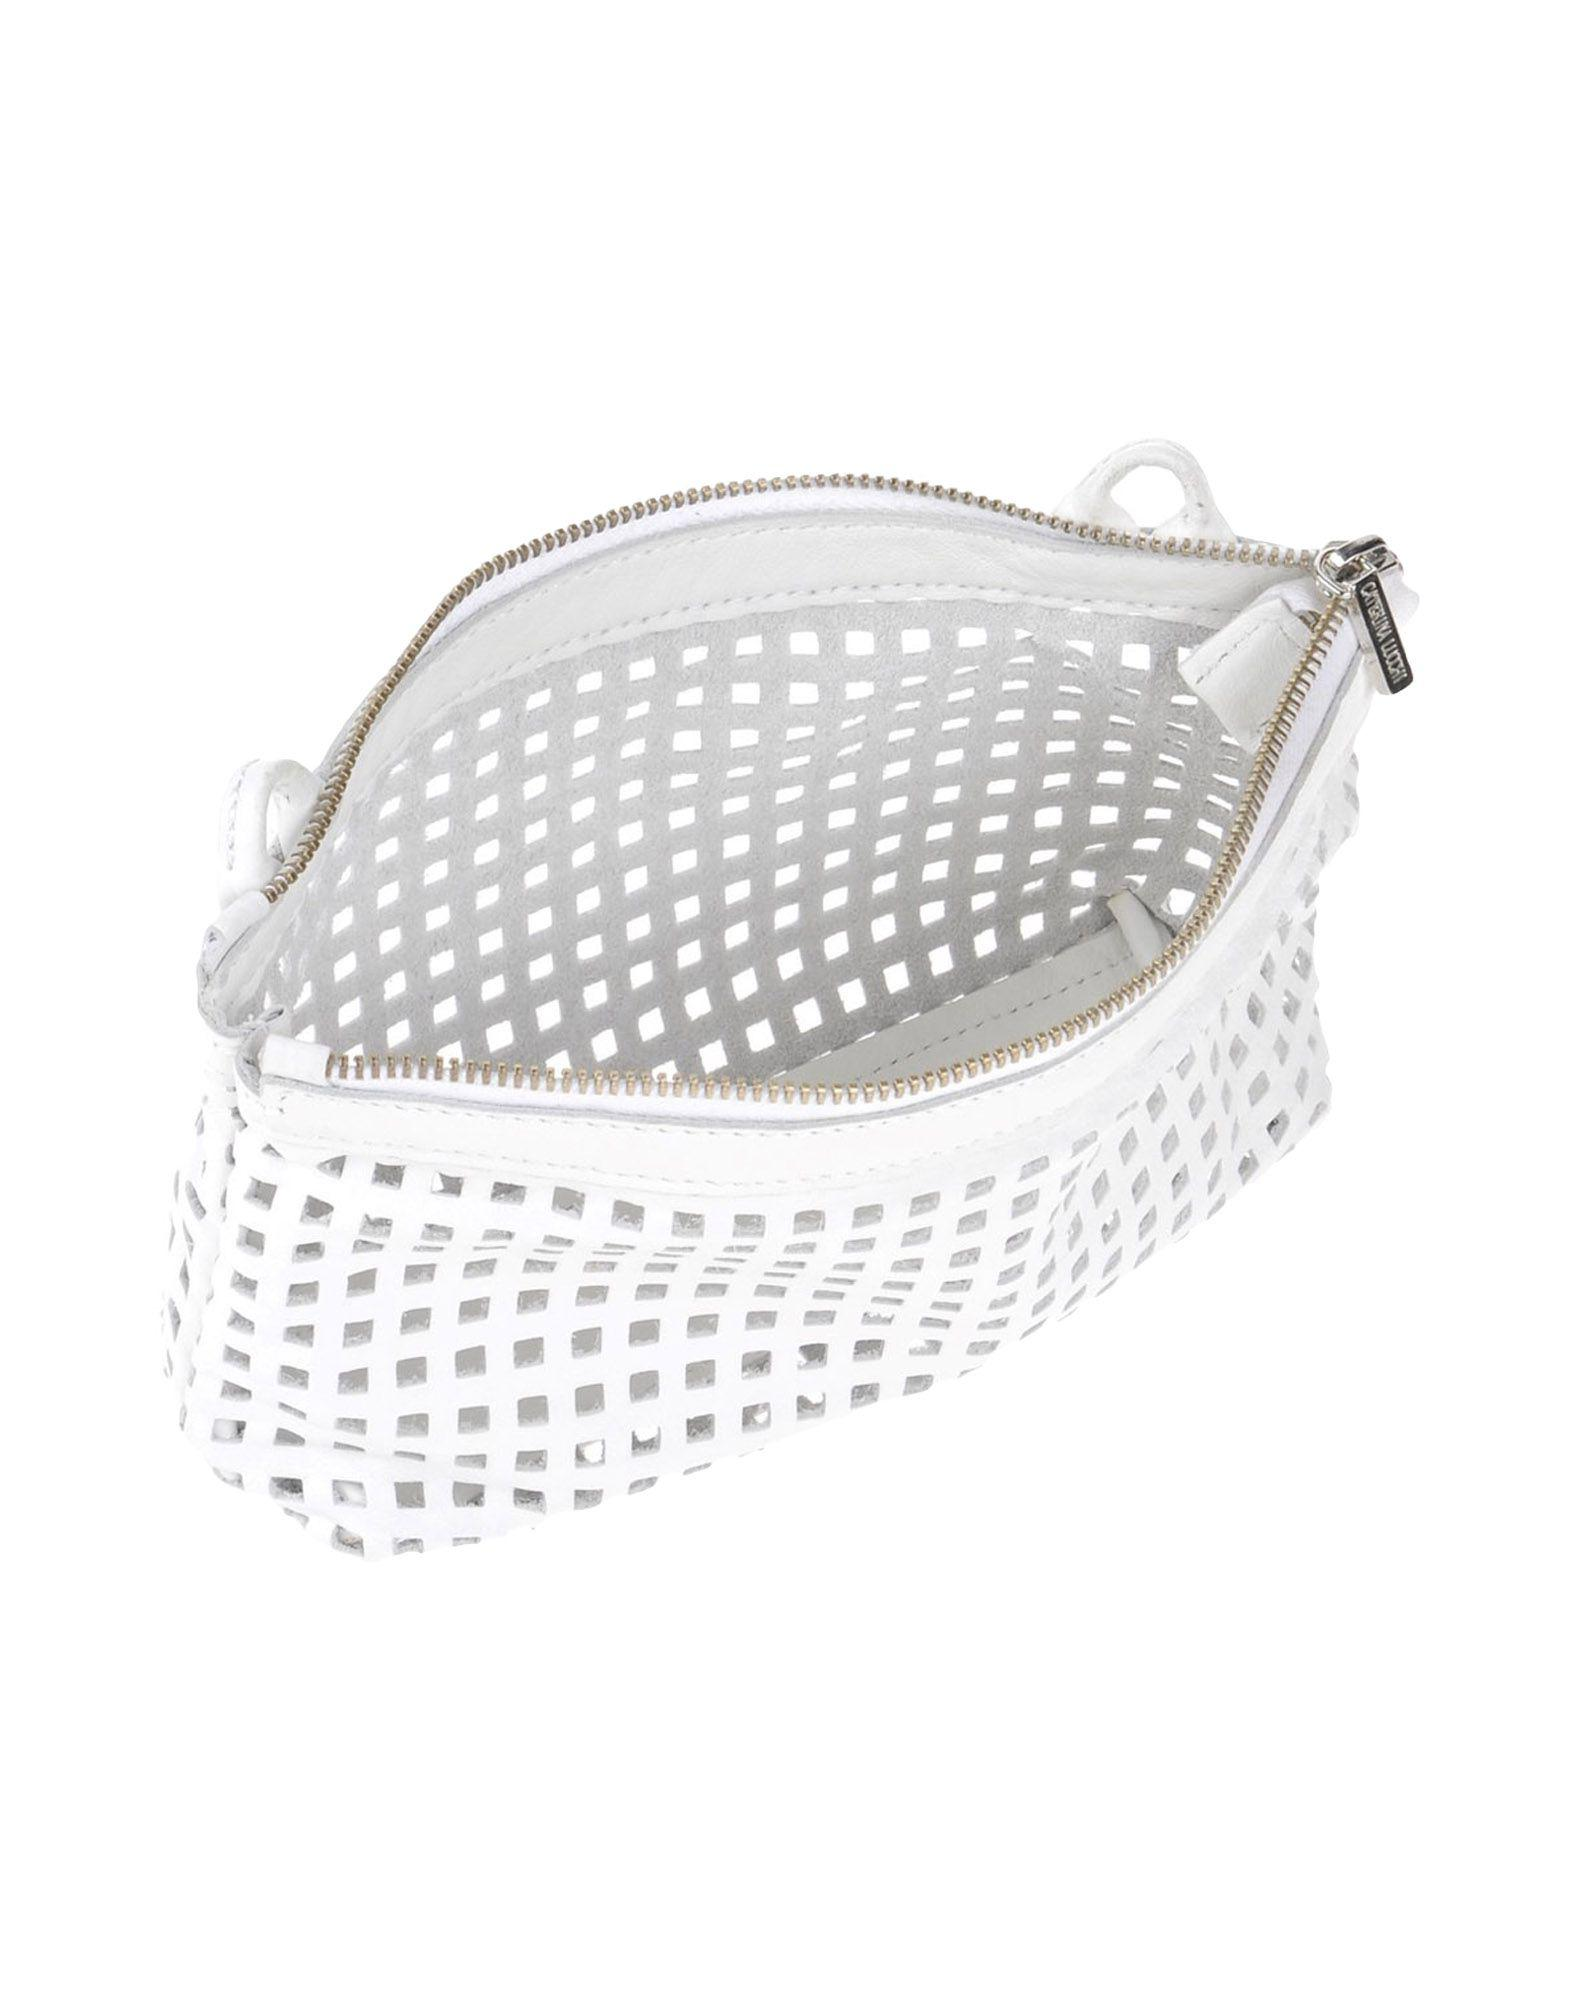 Caterina Lucchi Leather Cross-body Bag in White